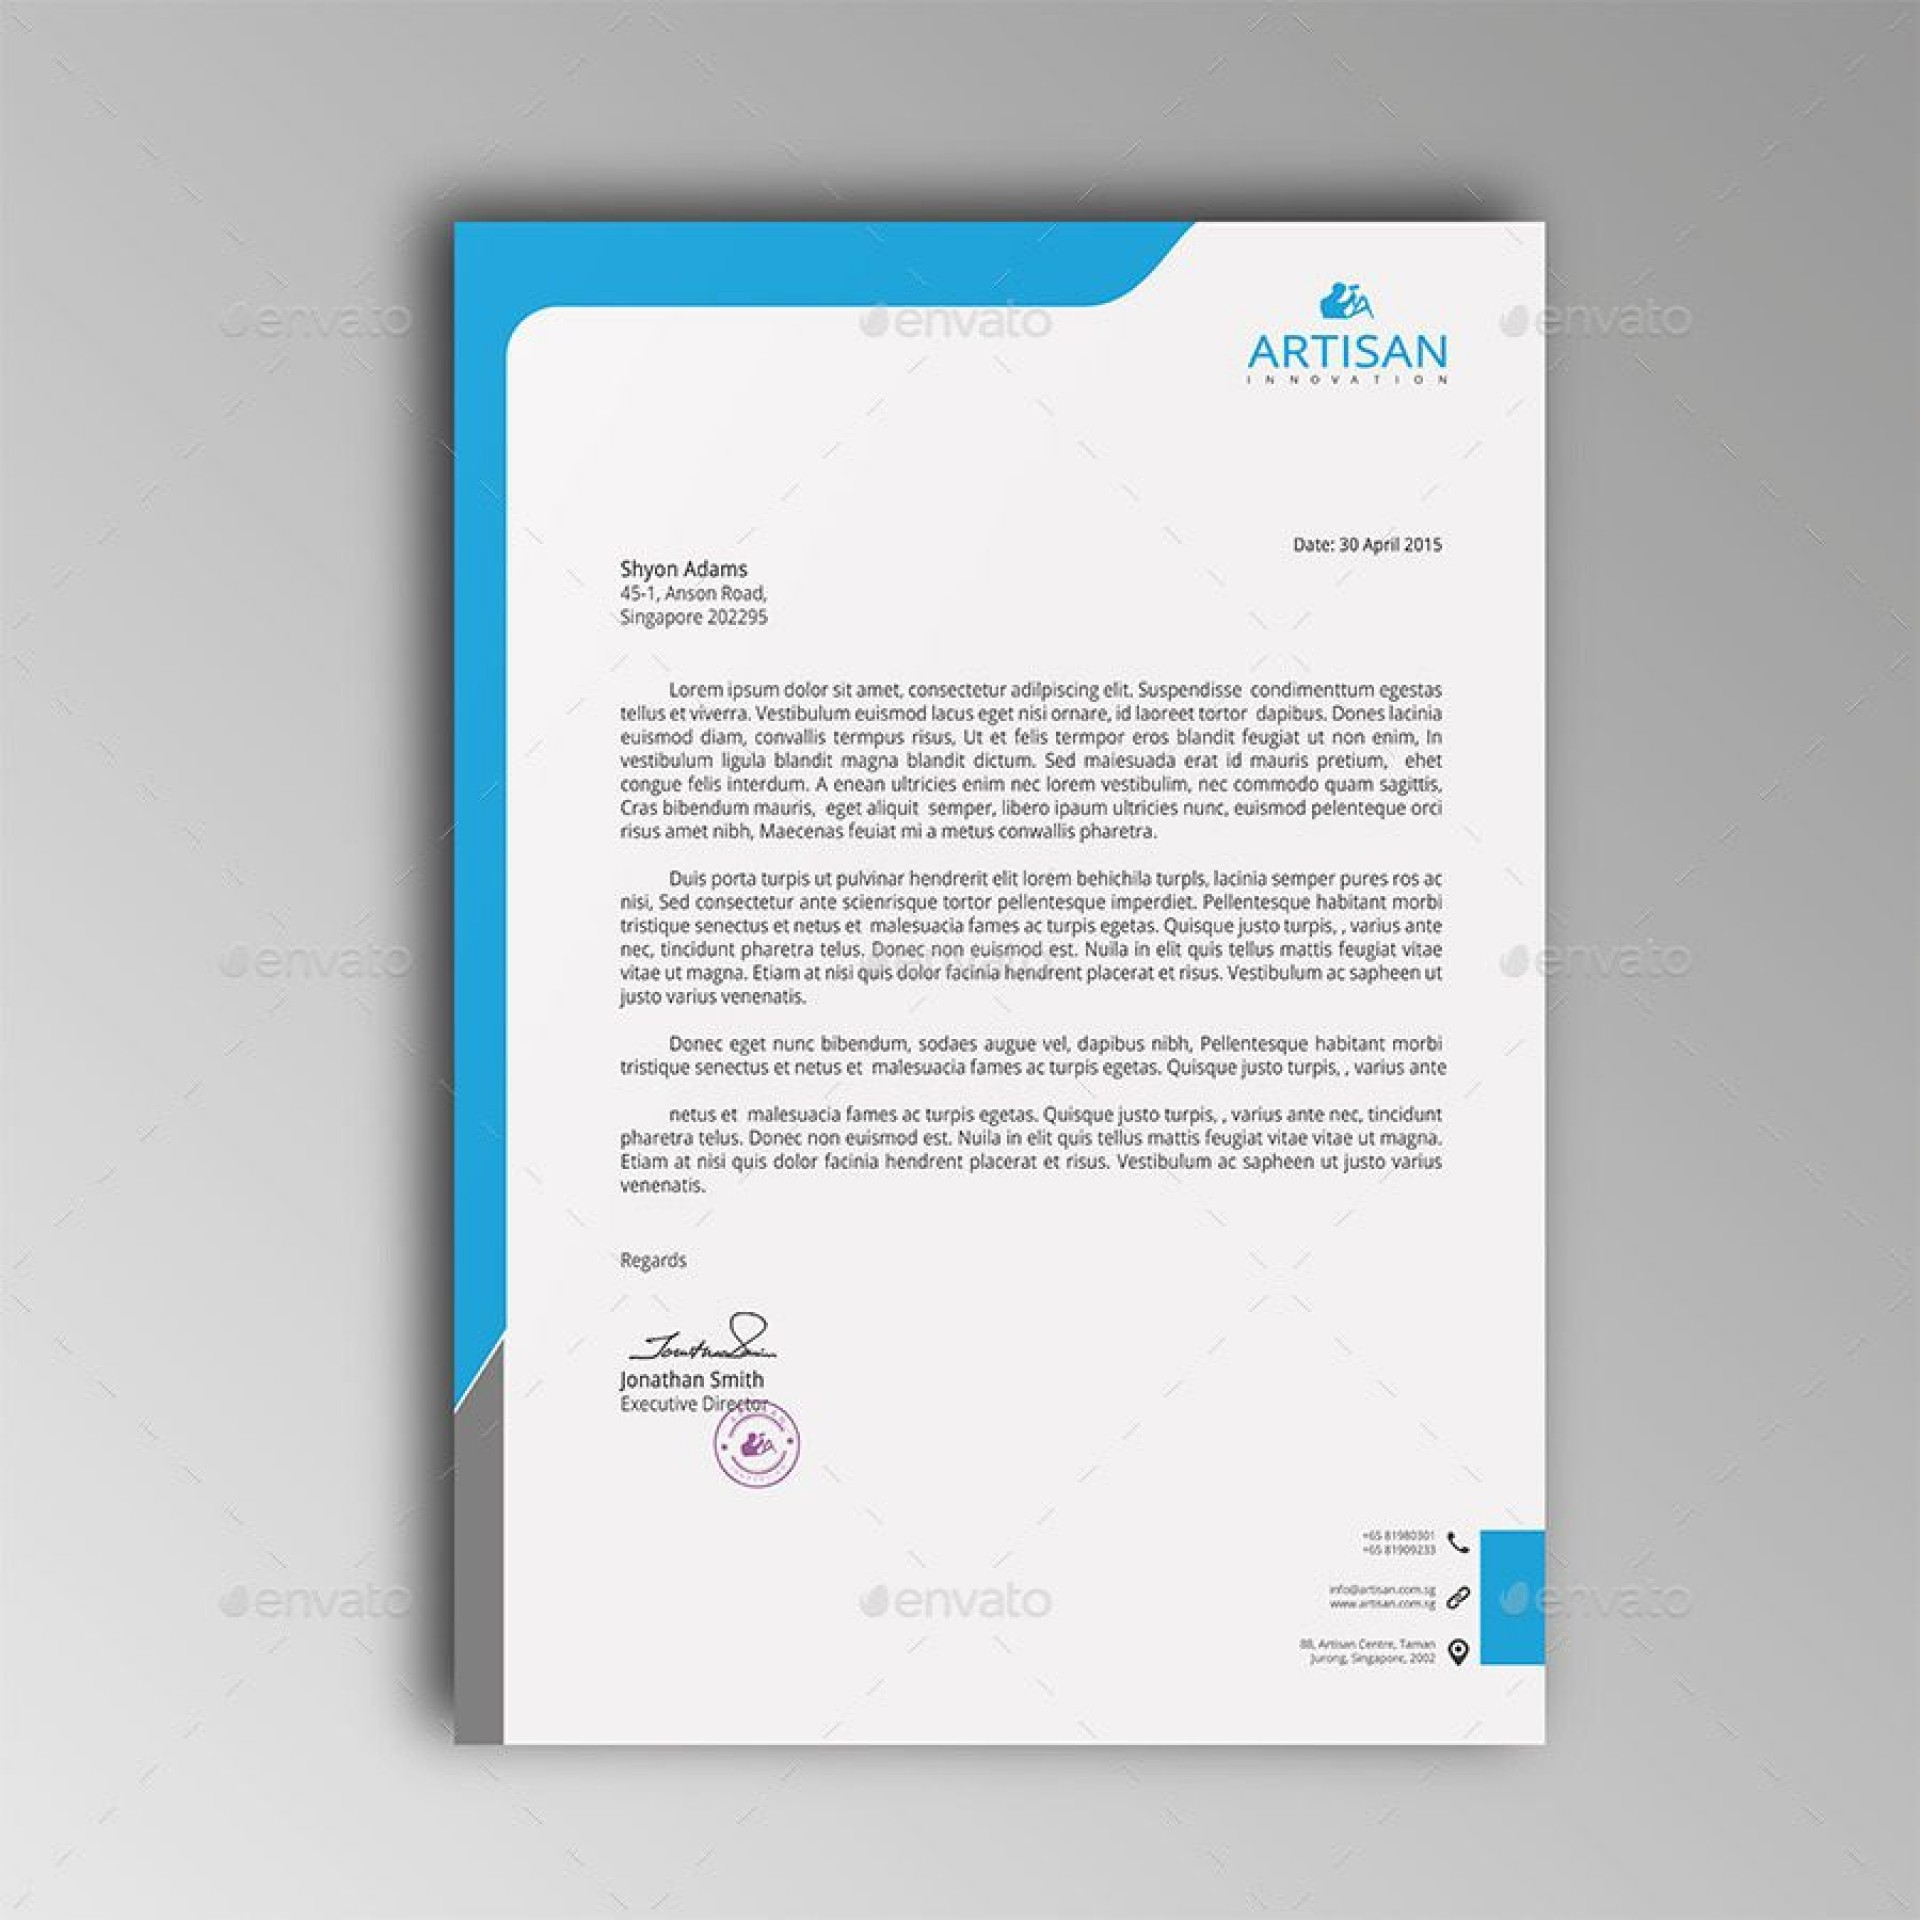 009 Striking Doctor Letterhead Format In Word Free Download Inspiration  Design1920